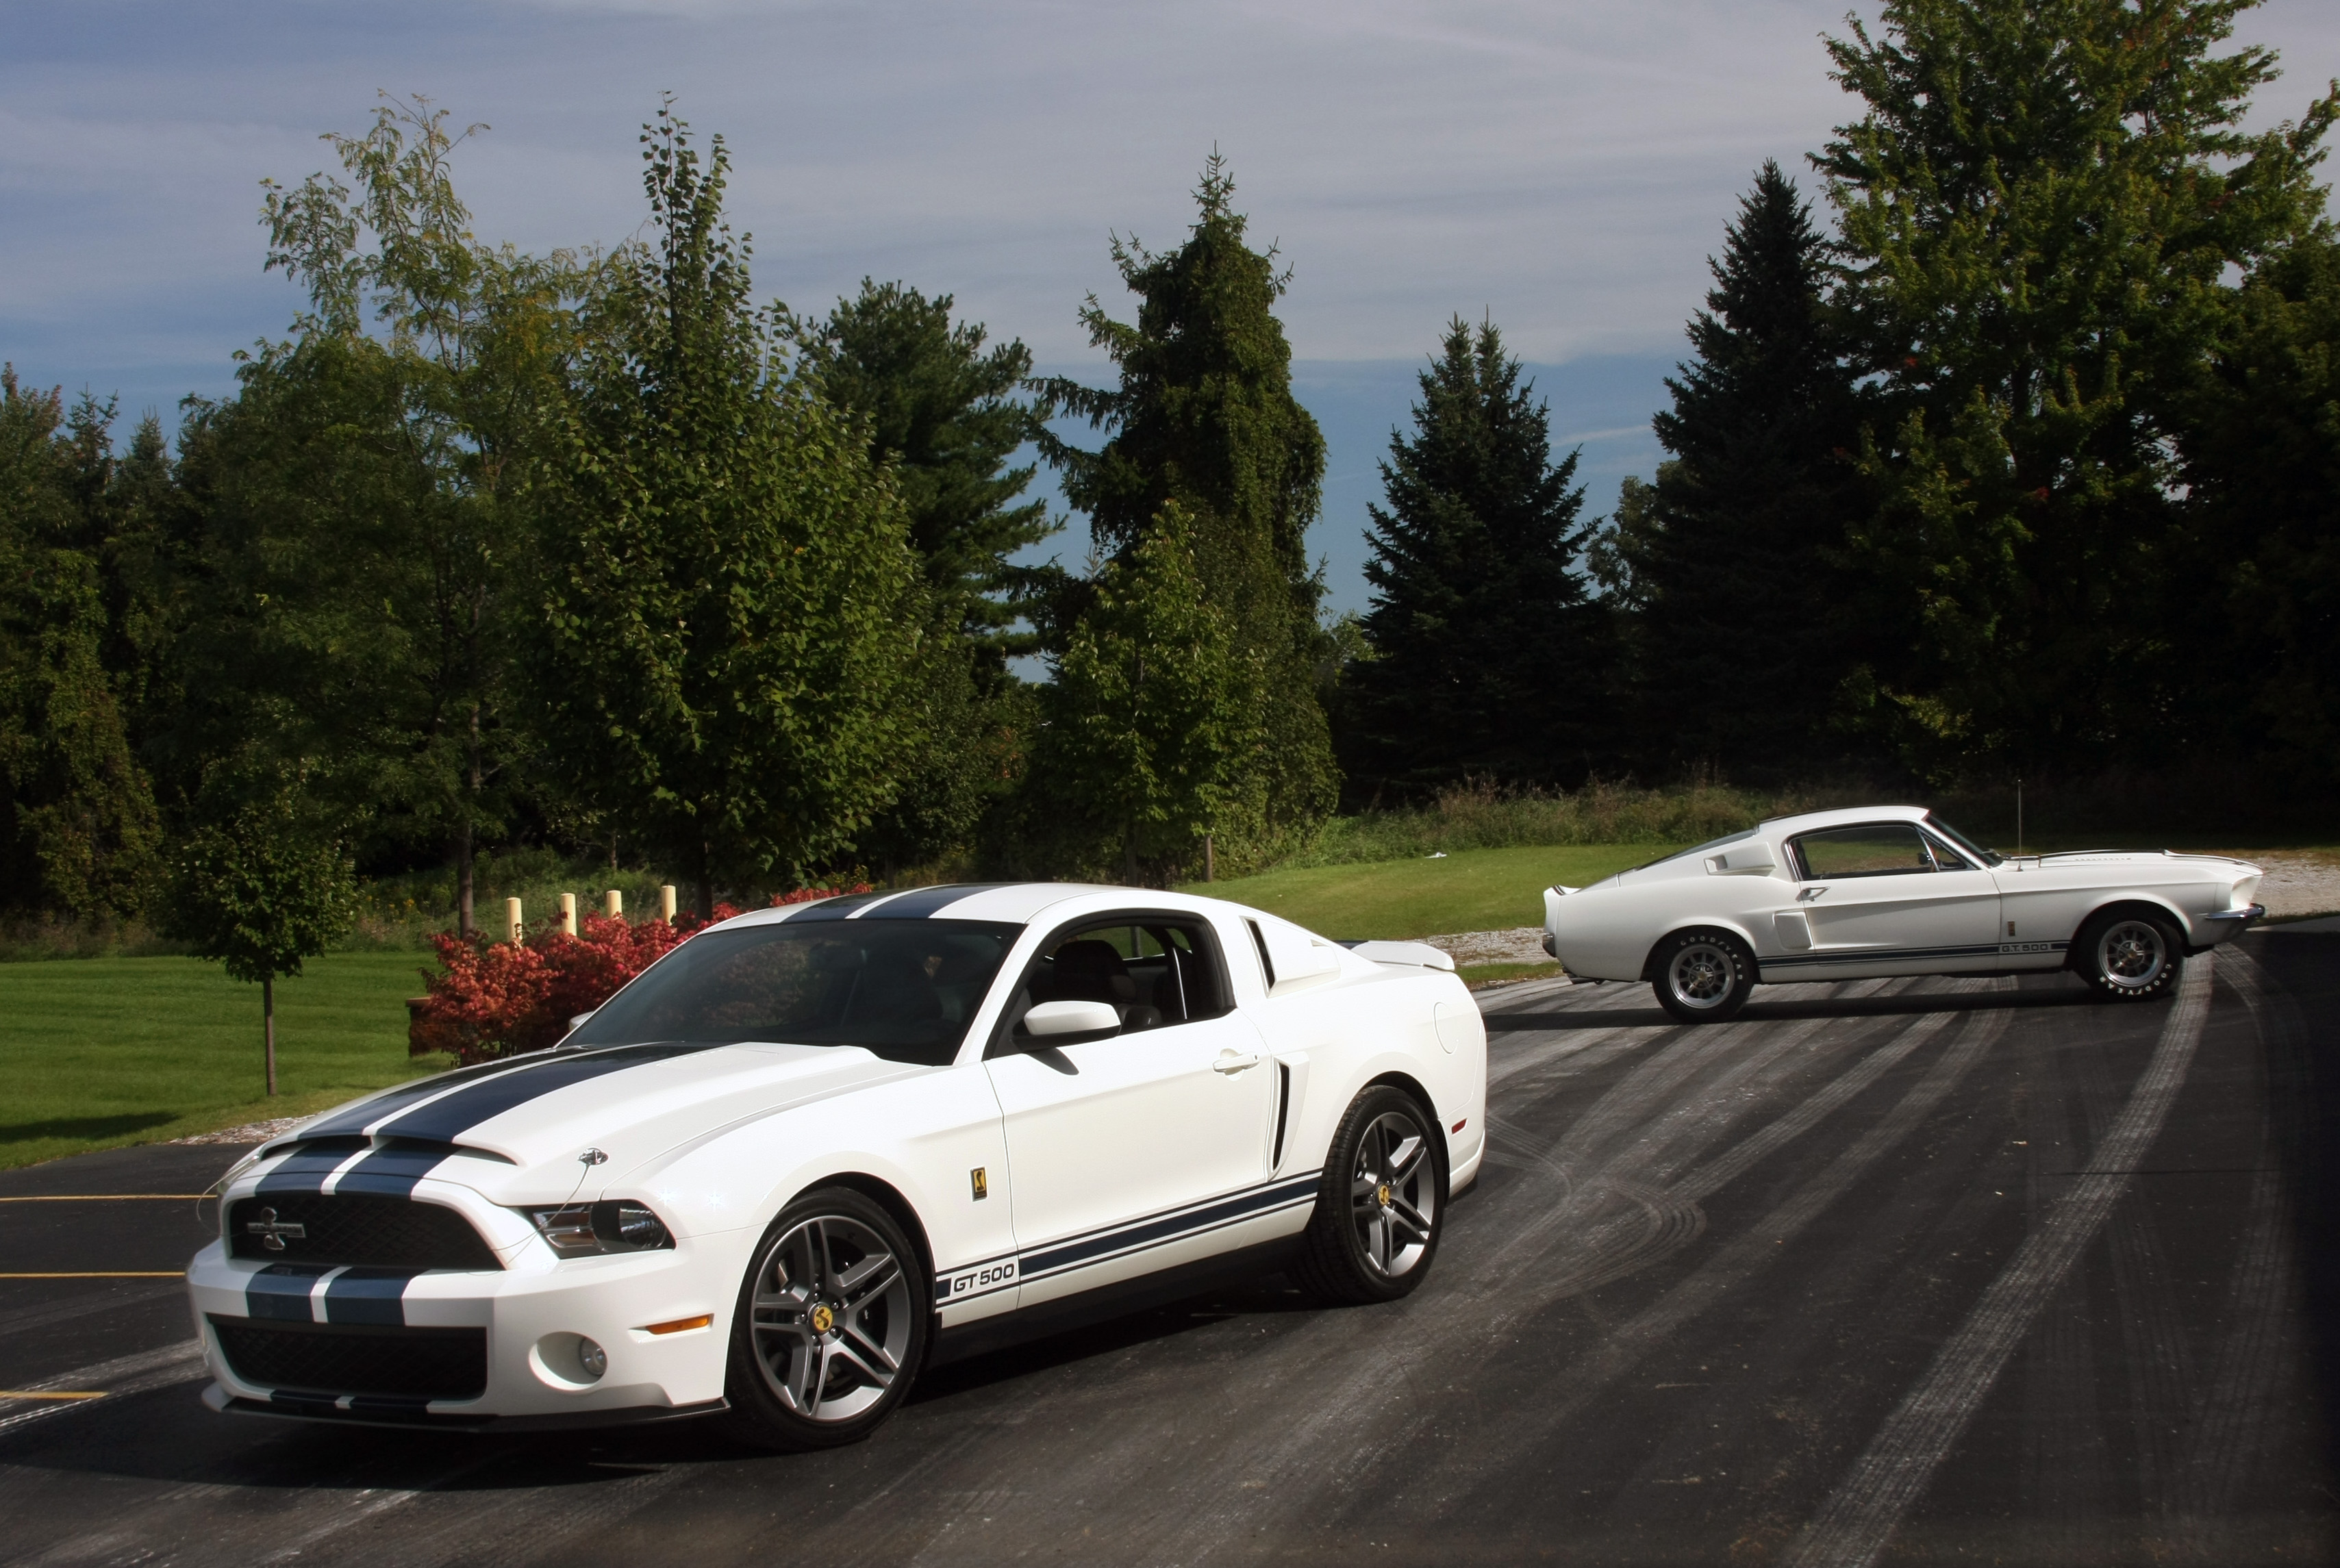 1967 Shelby Gt500 Amp 2010 Shelby Gt500 Patriot Edition Full